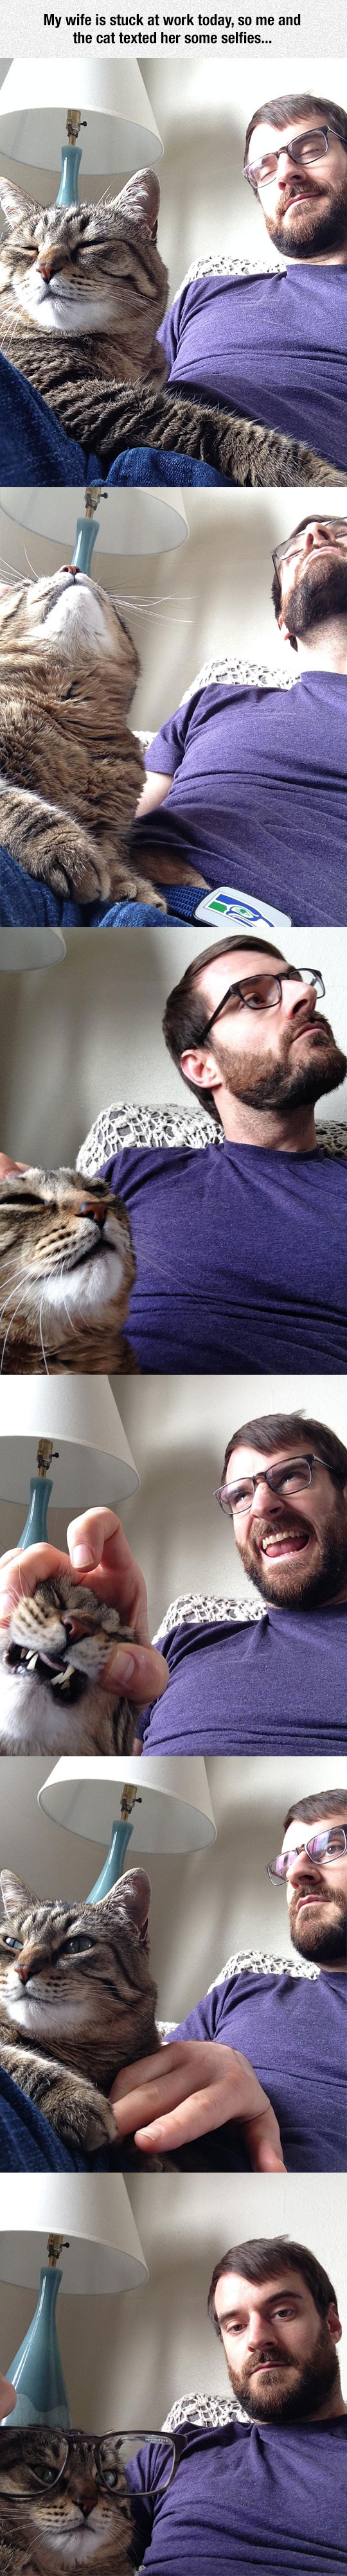 Selfie Time With The Cat